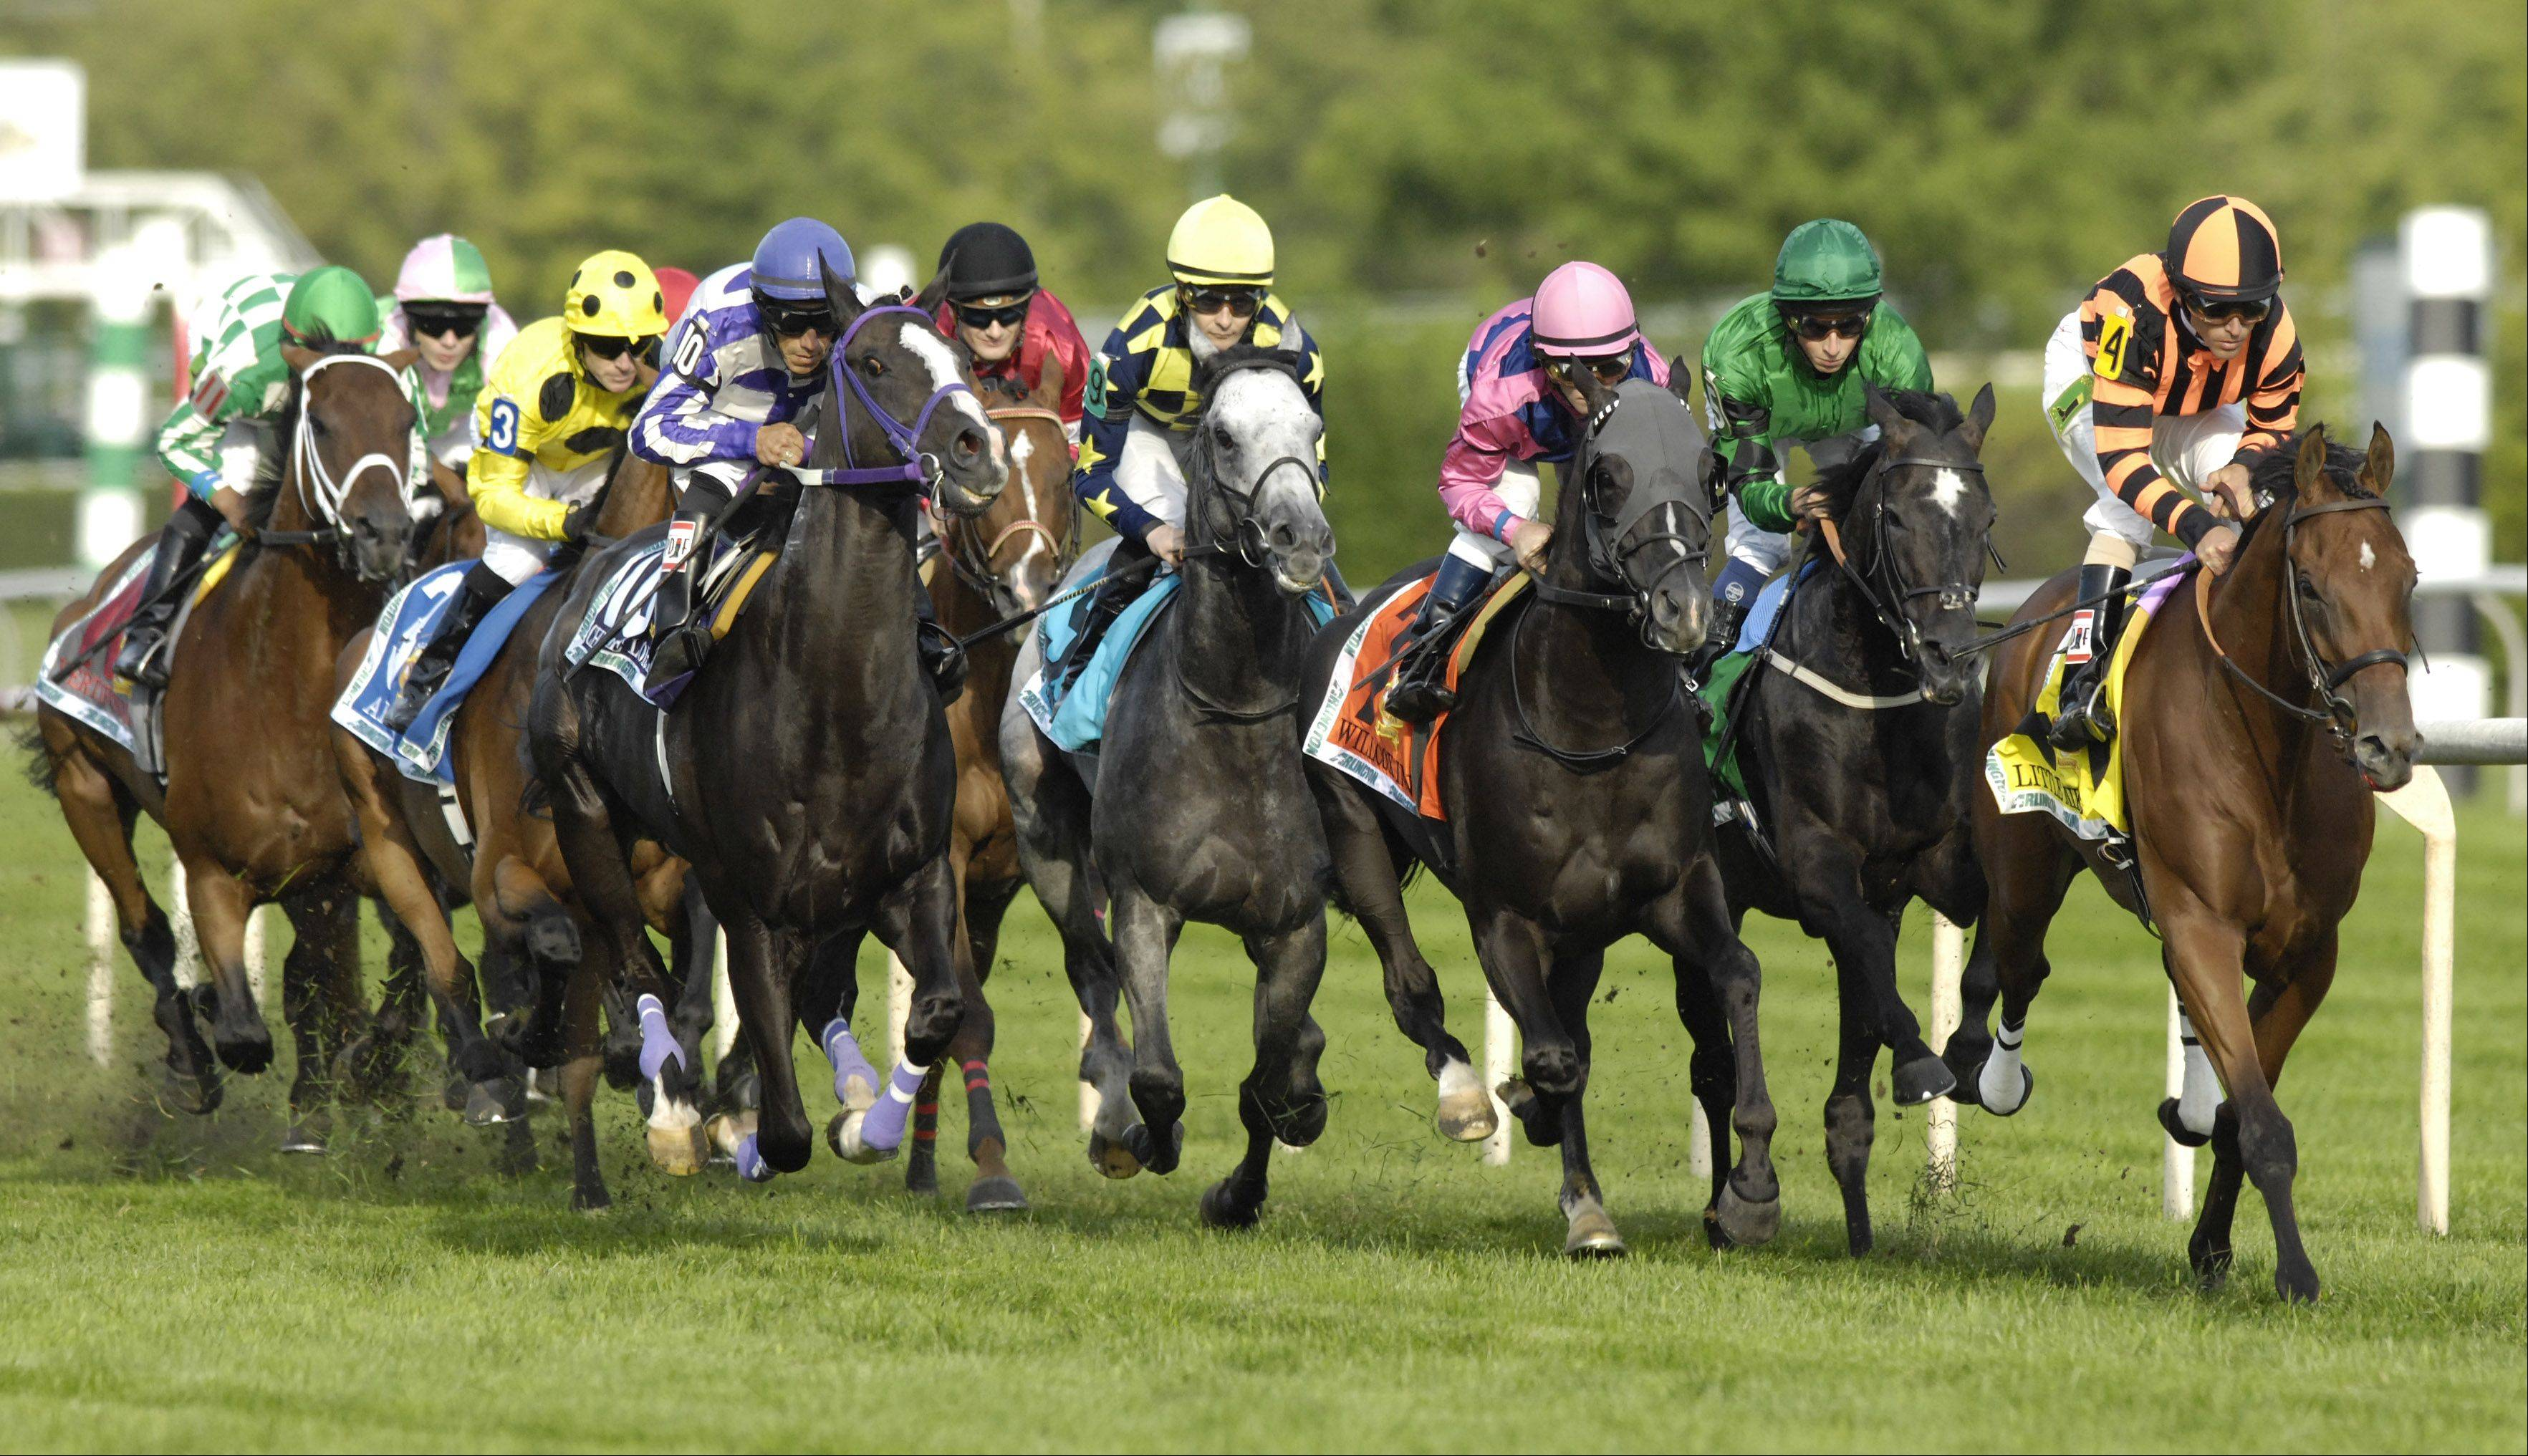 The field passes shortly after the start, with eventual winner Little Mike at right, during last year's edition of the Arlington Million at Arlington Park.